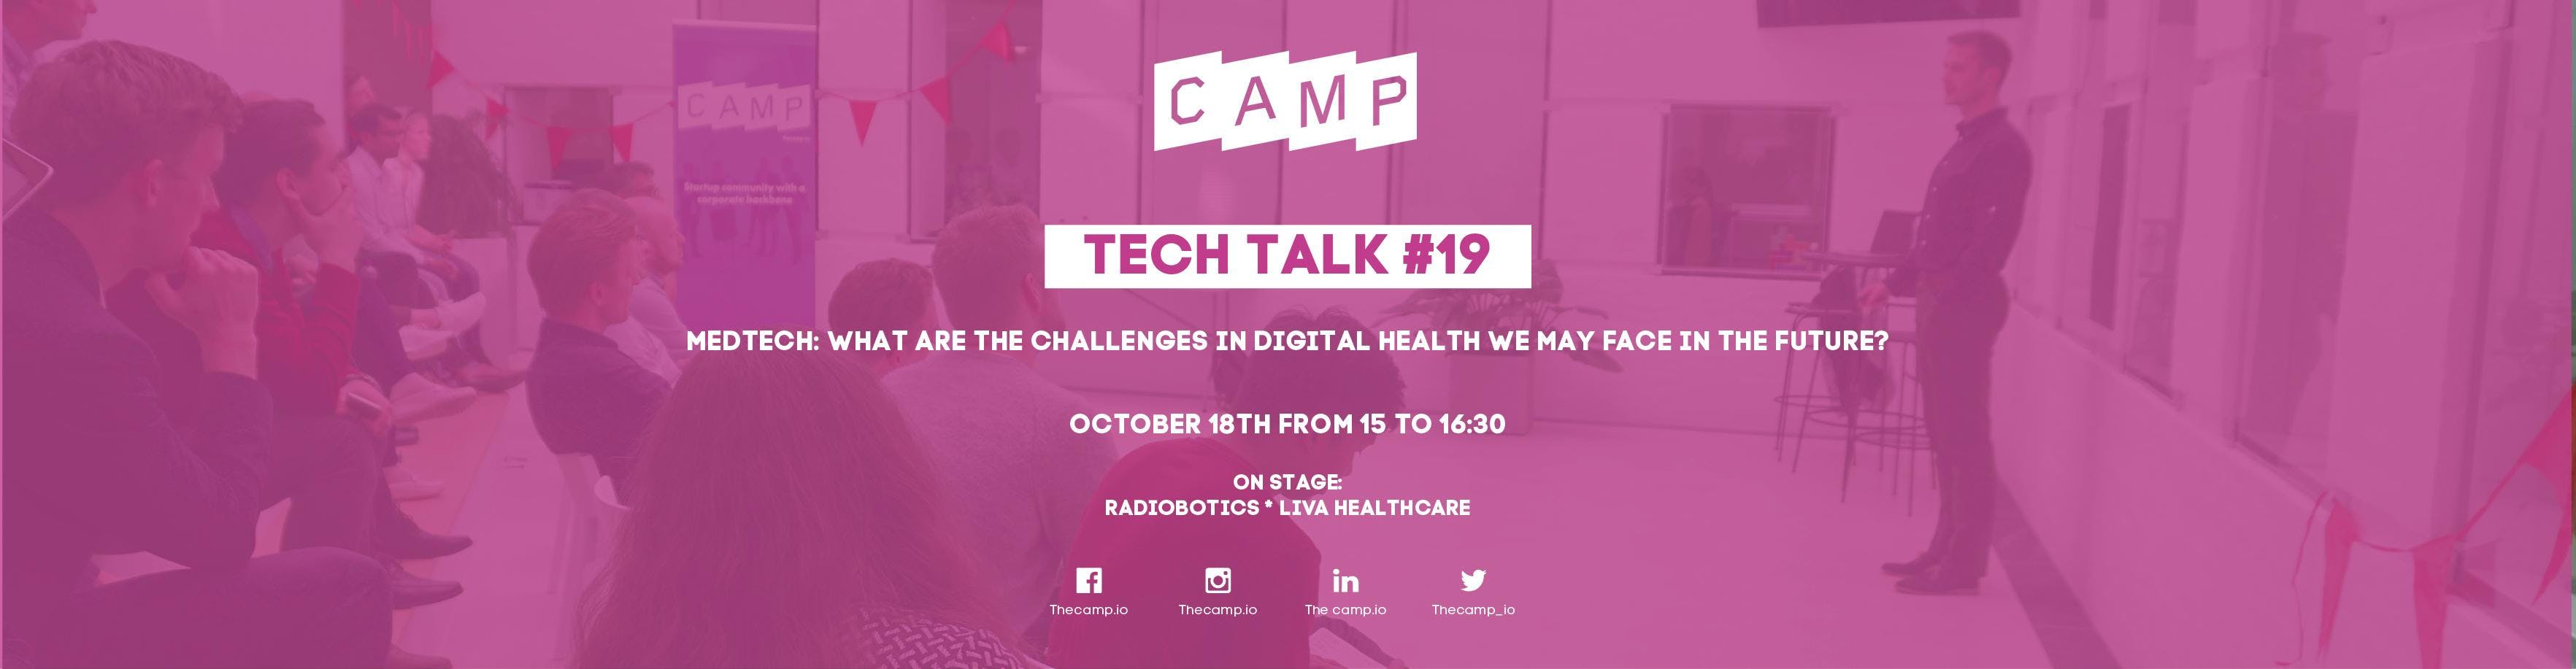 Tech Talk #19: Challenges in Digital Health We may Face in the Future